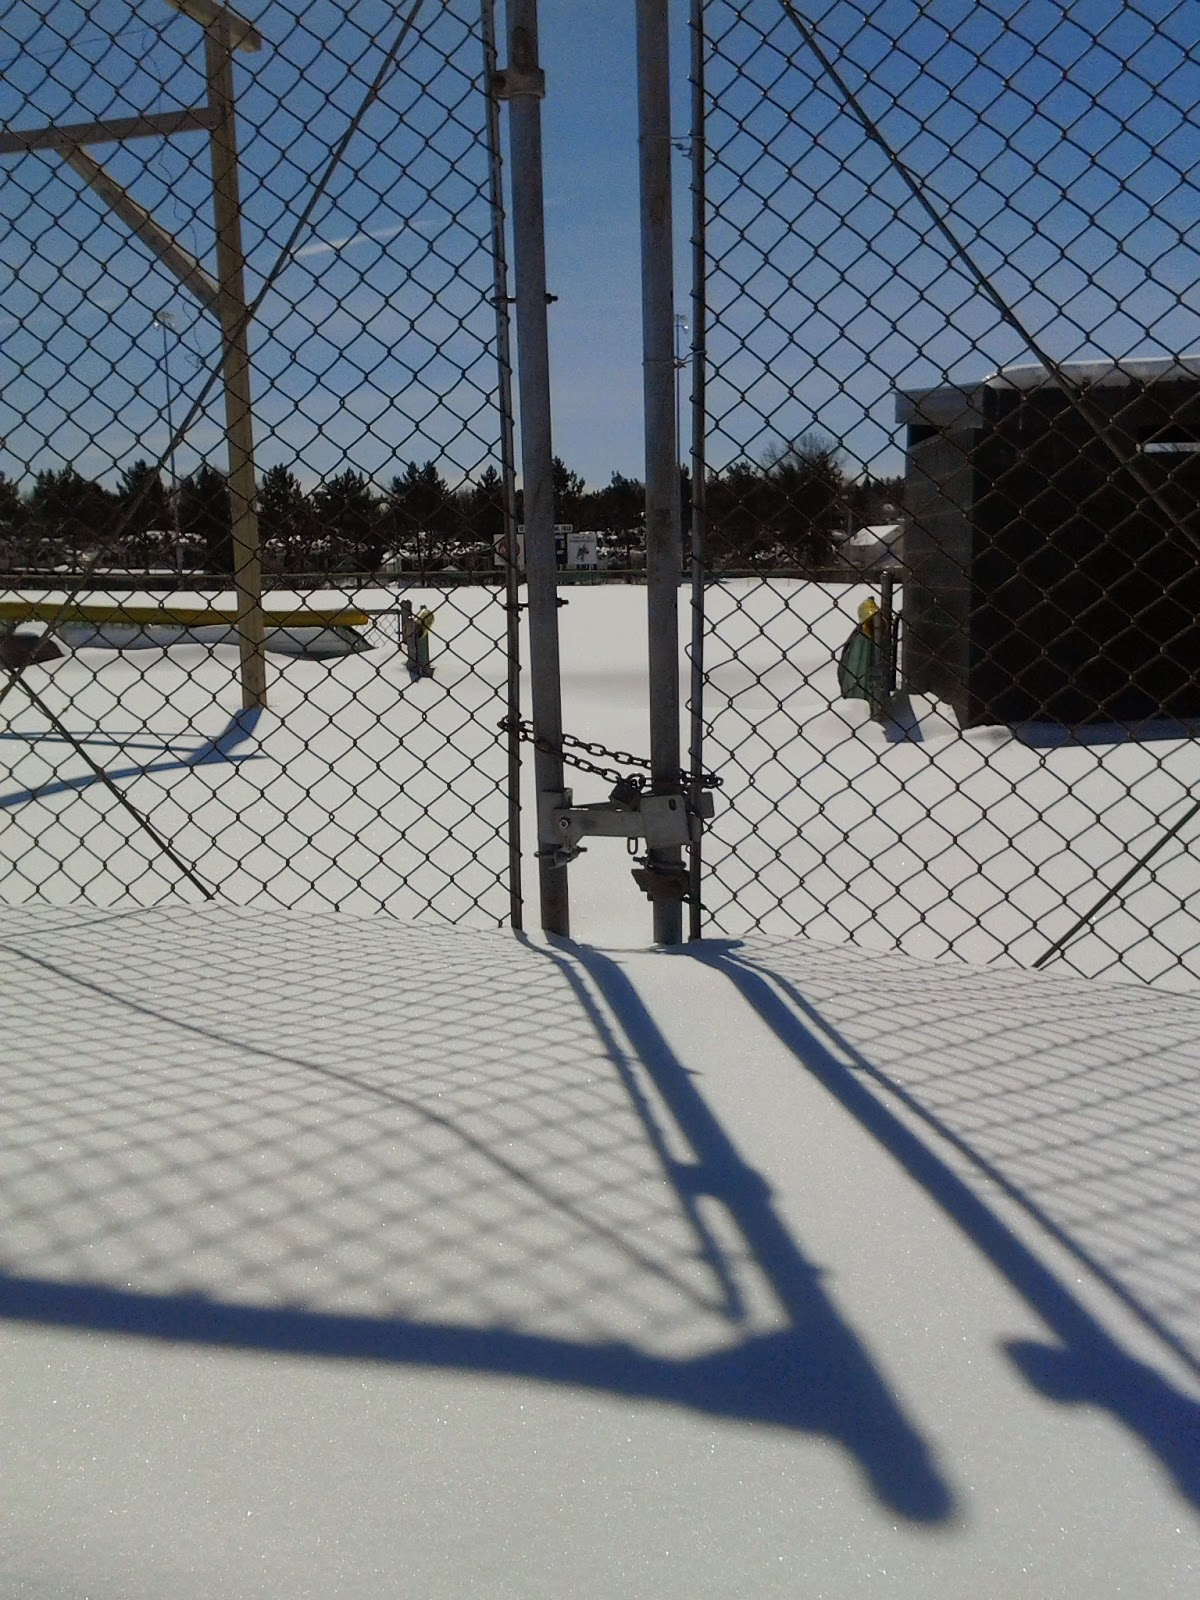 Ely, MN, snow, baseball, field, march 2014